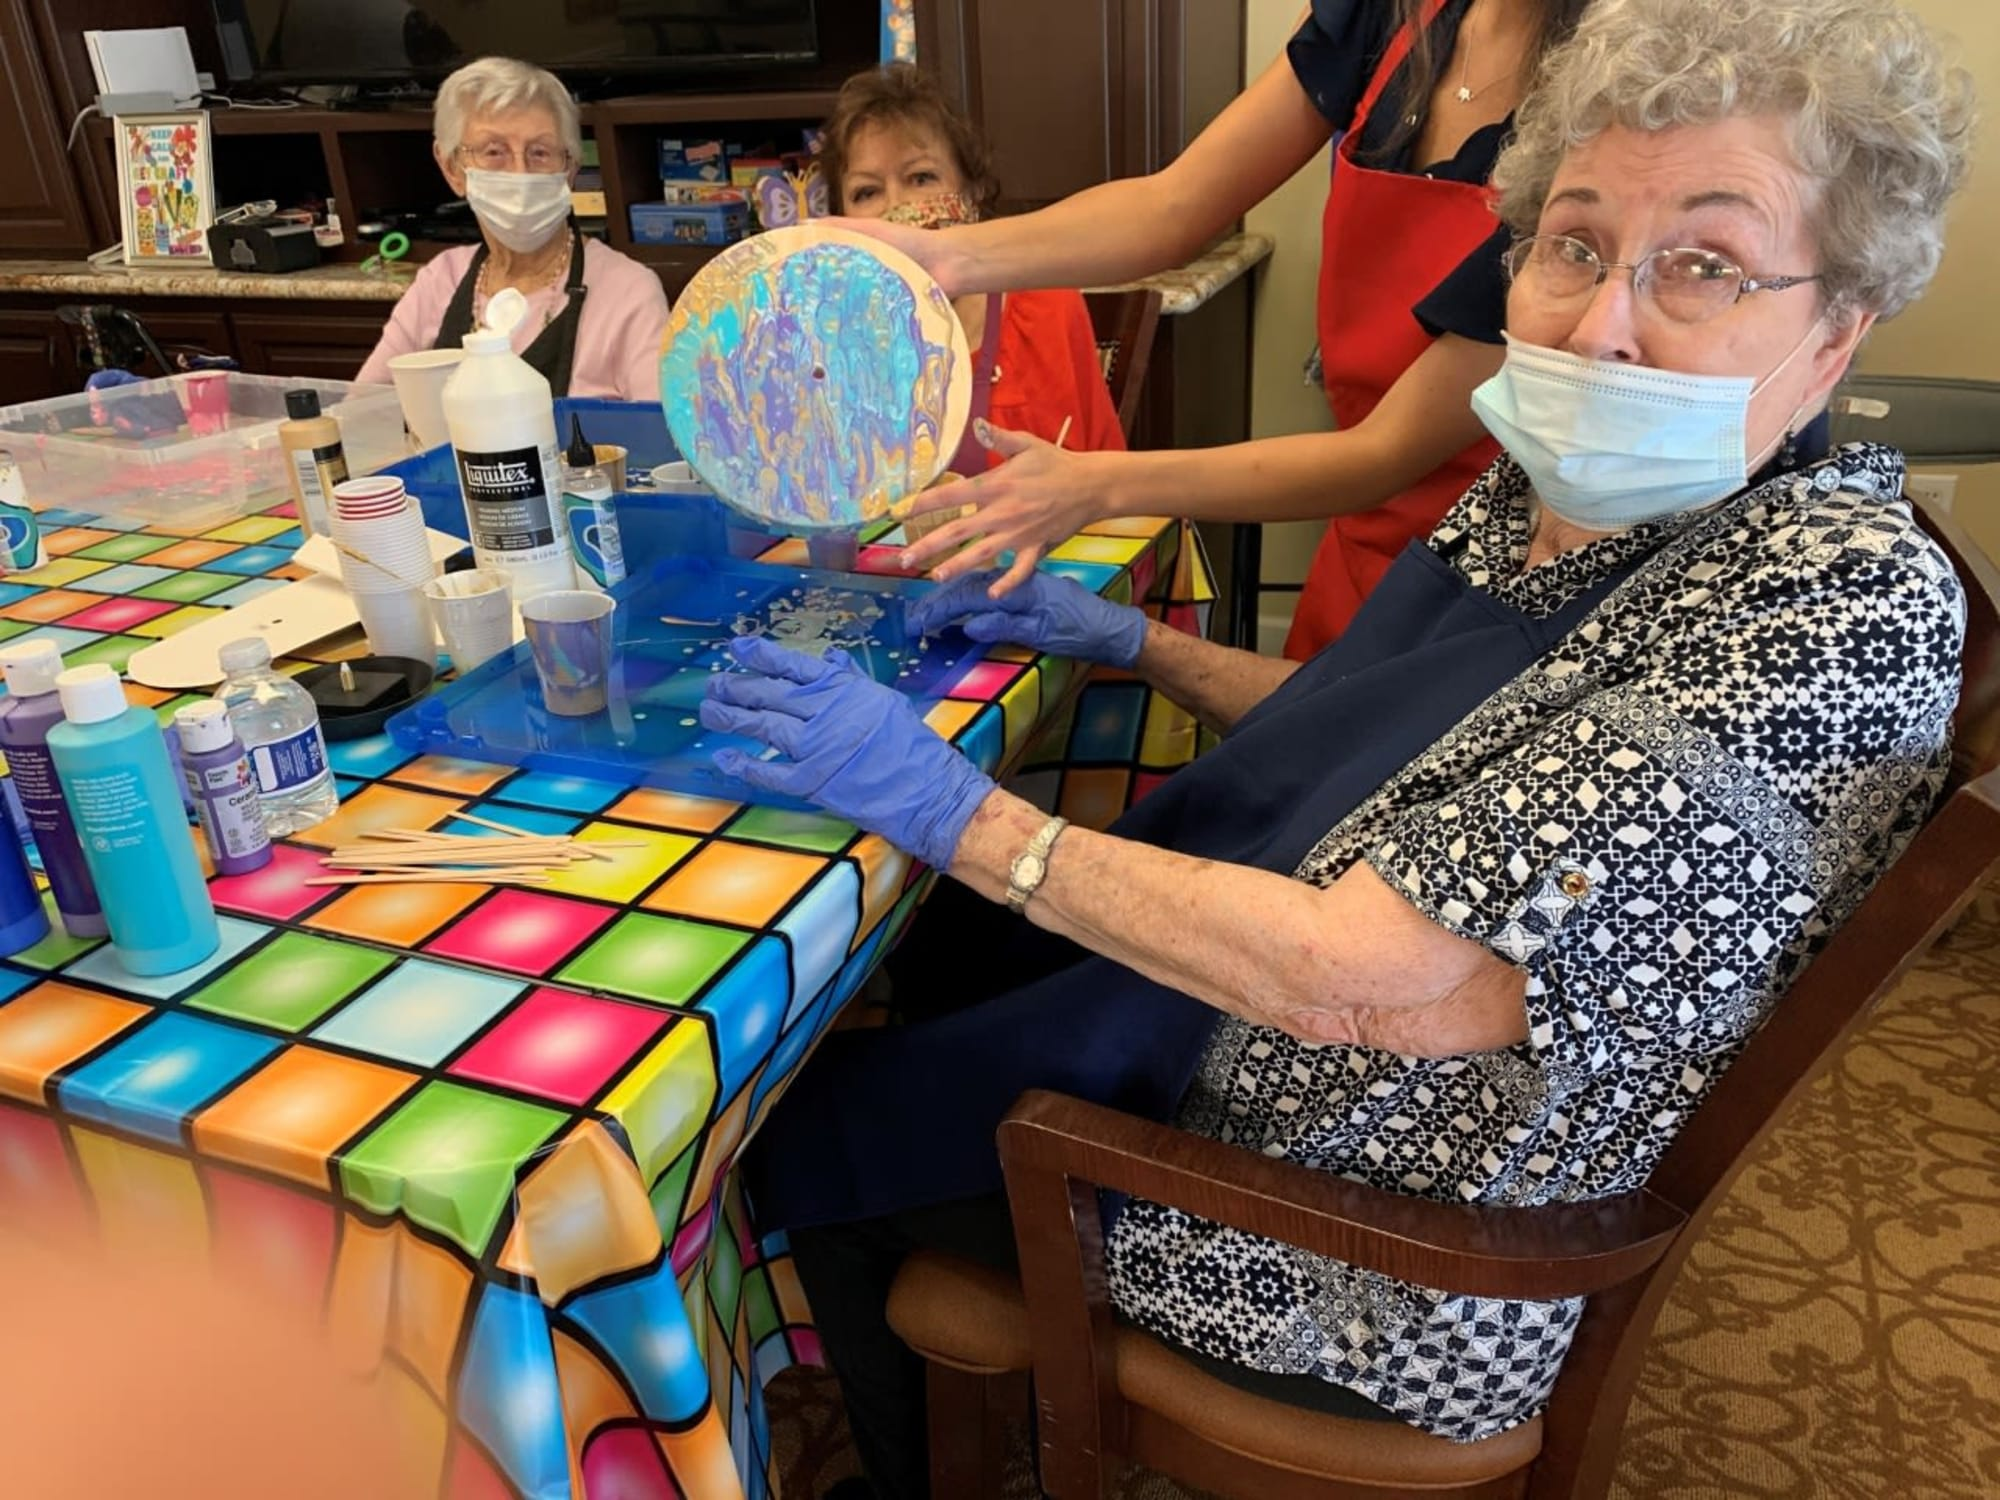 Arts and crafts at The Commons on Thornton in Stockton, California